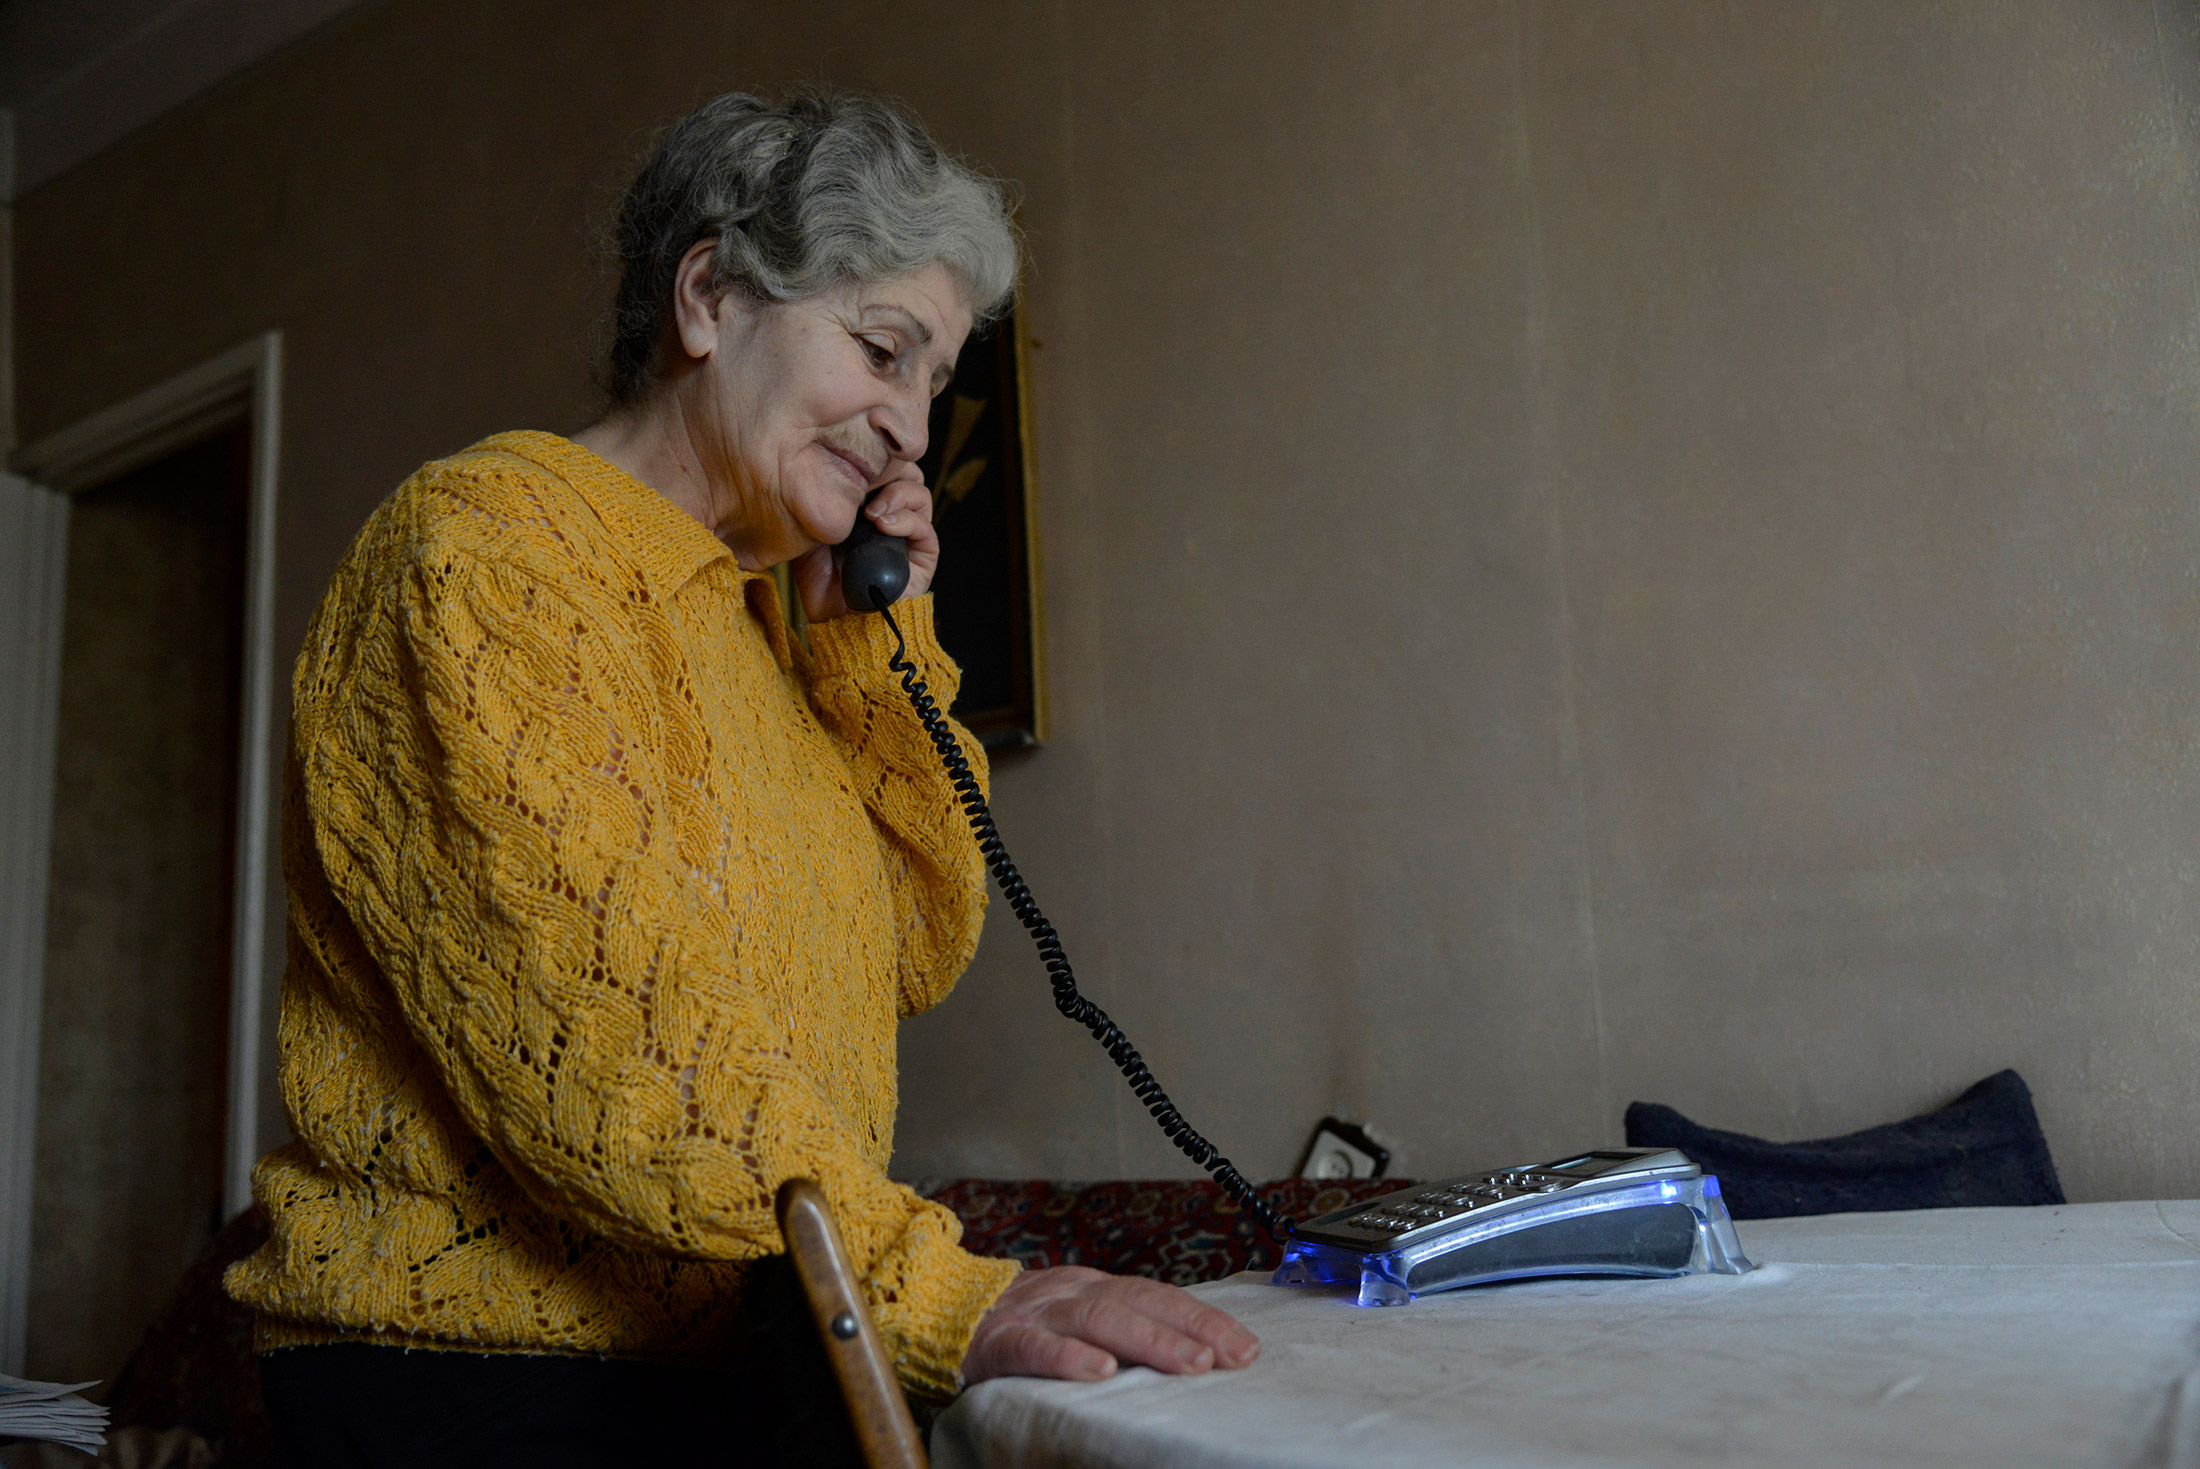 Margo Avetyan, 71, talks to her sister on the phone while Sveta completes her tasks. She helps clien ...